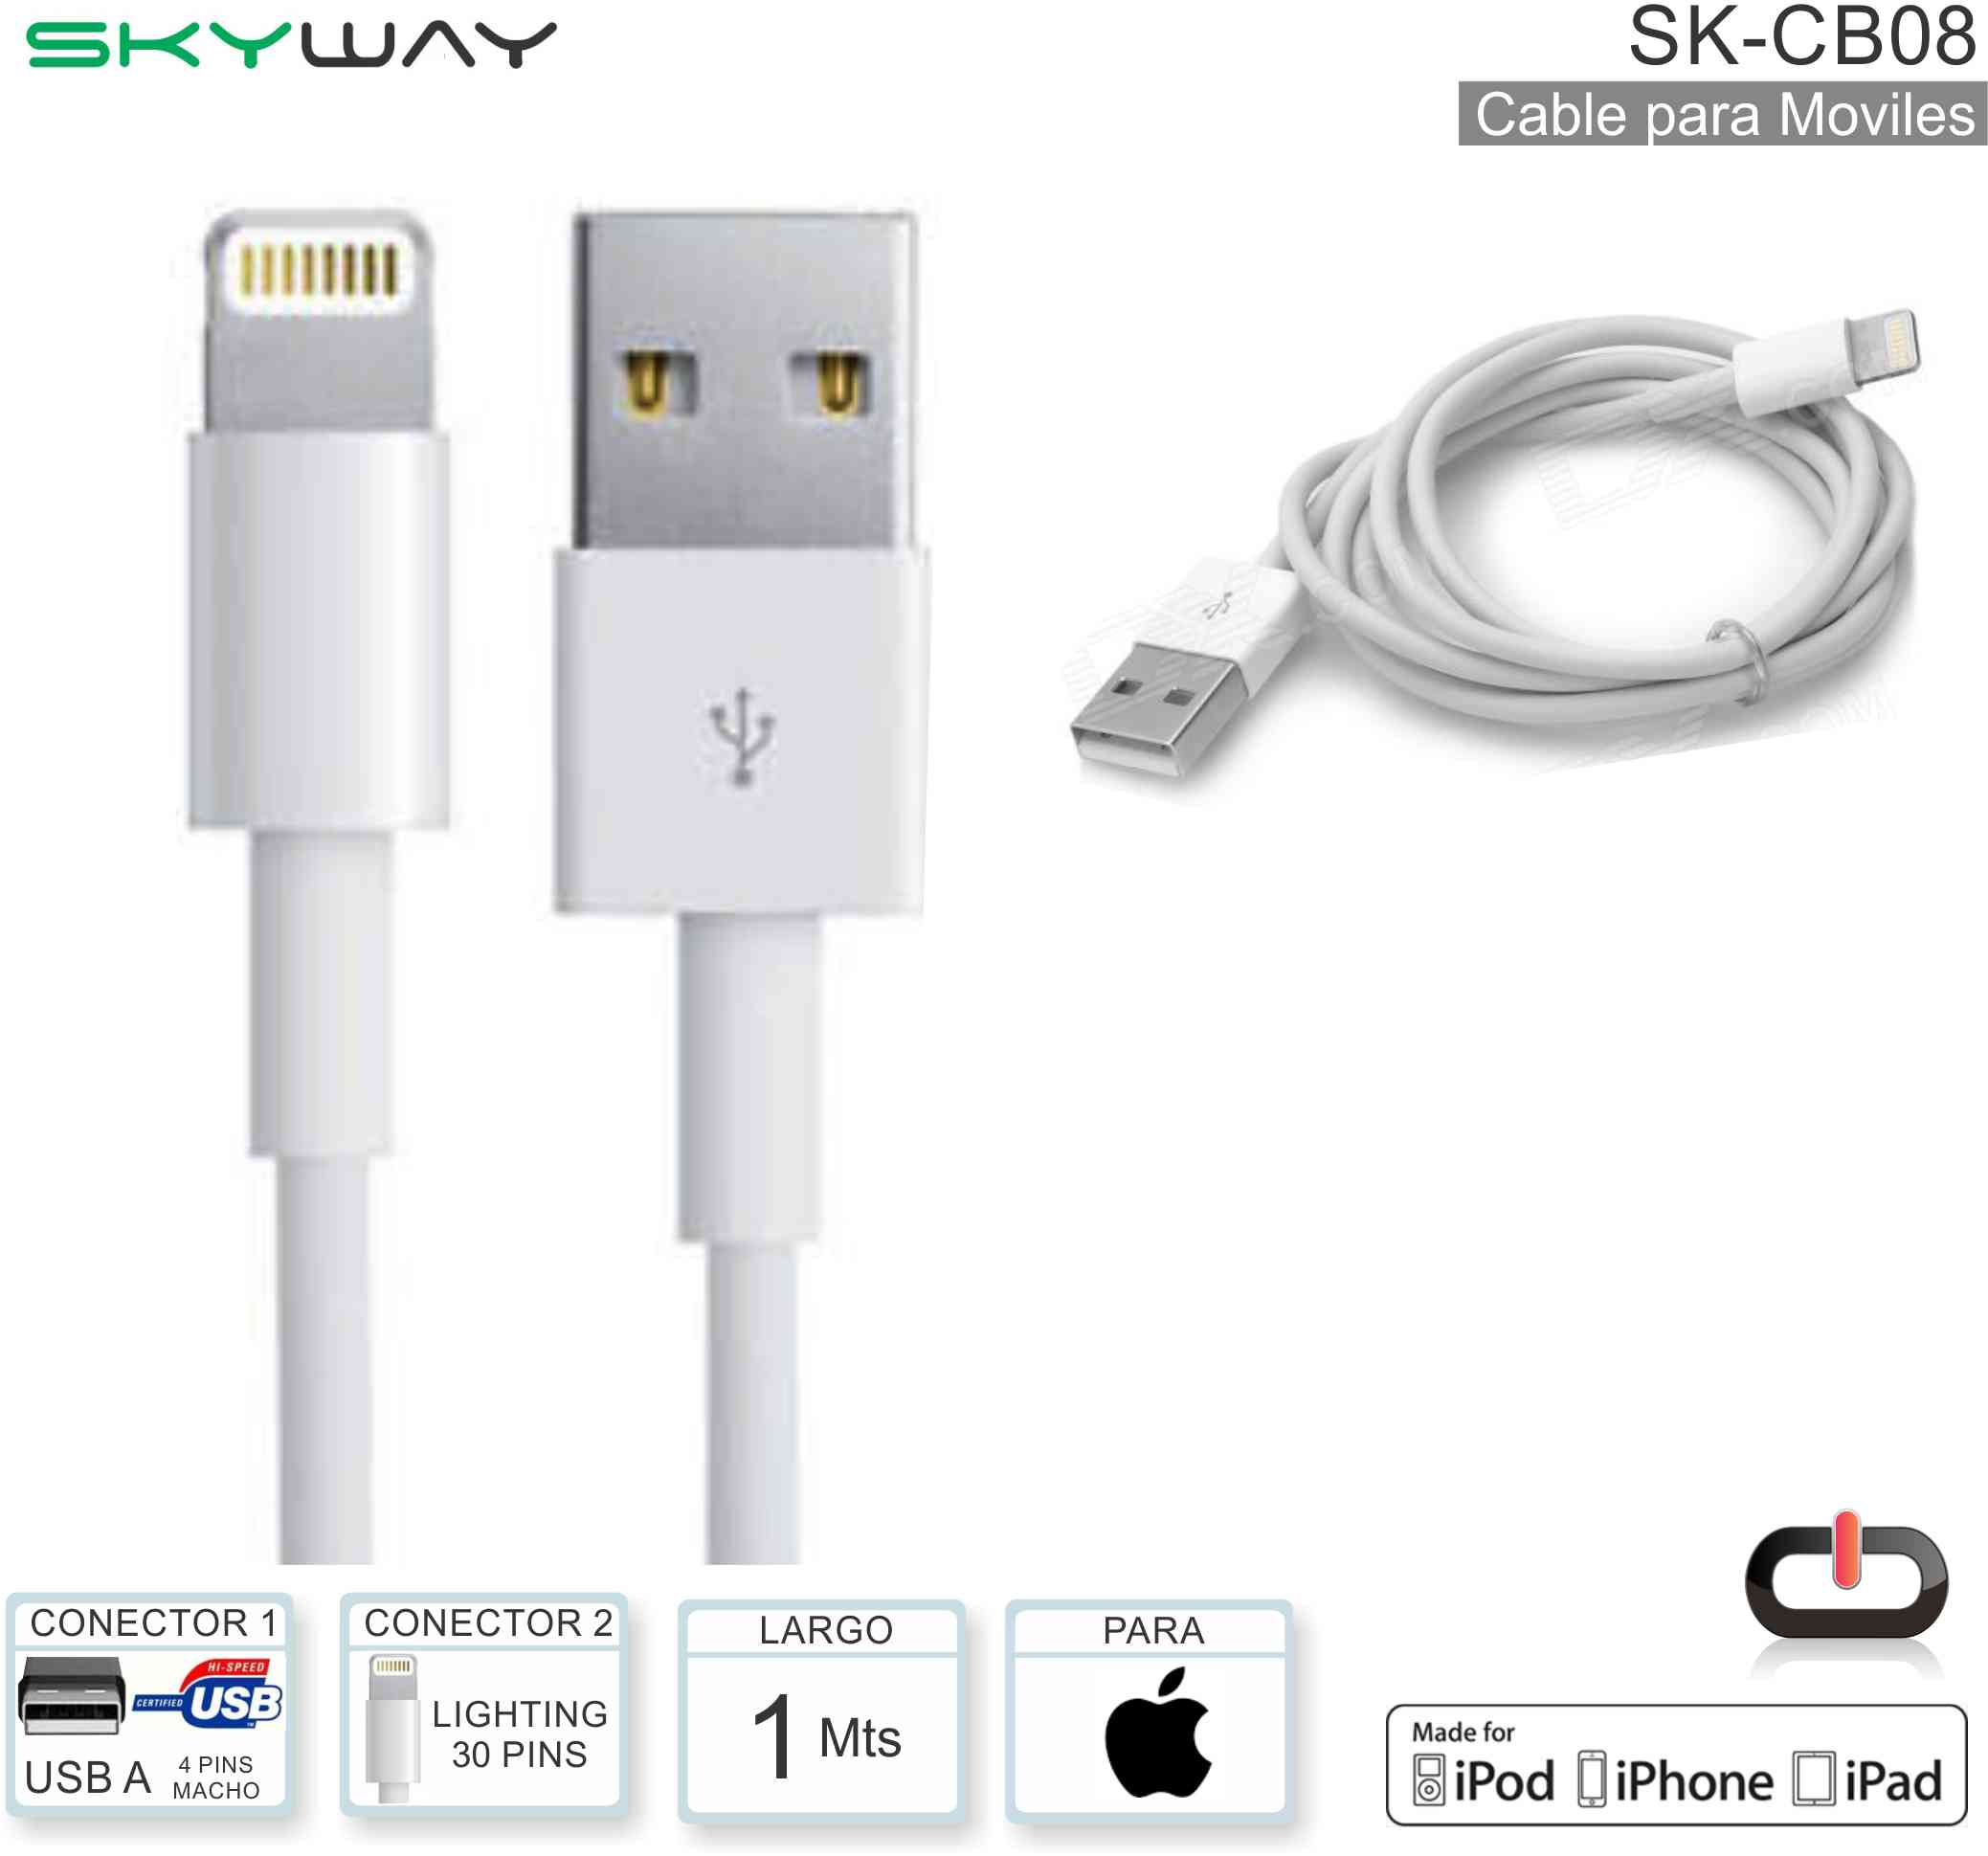 Cable USB M - Lightn 30P M 1M SKYWAY SK-CB08 Apple